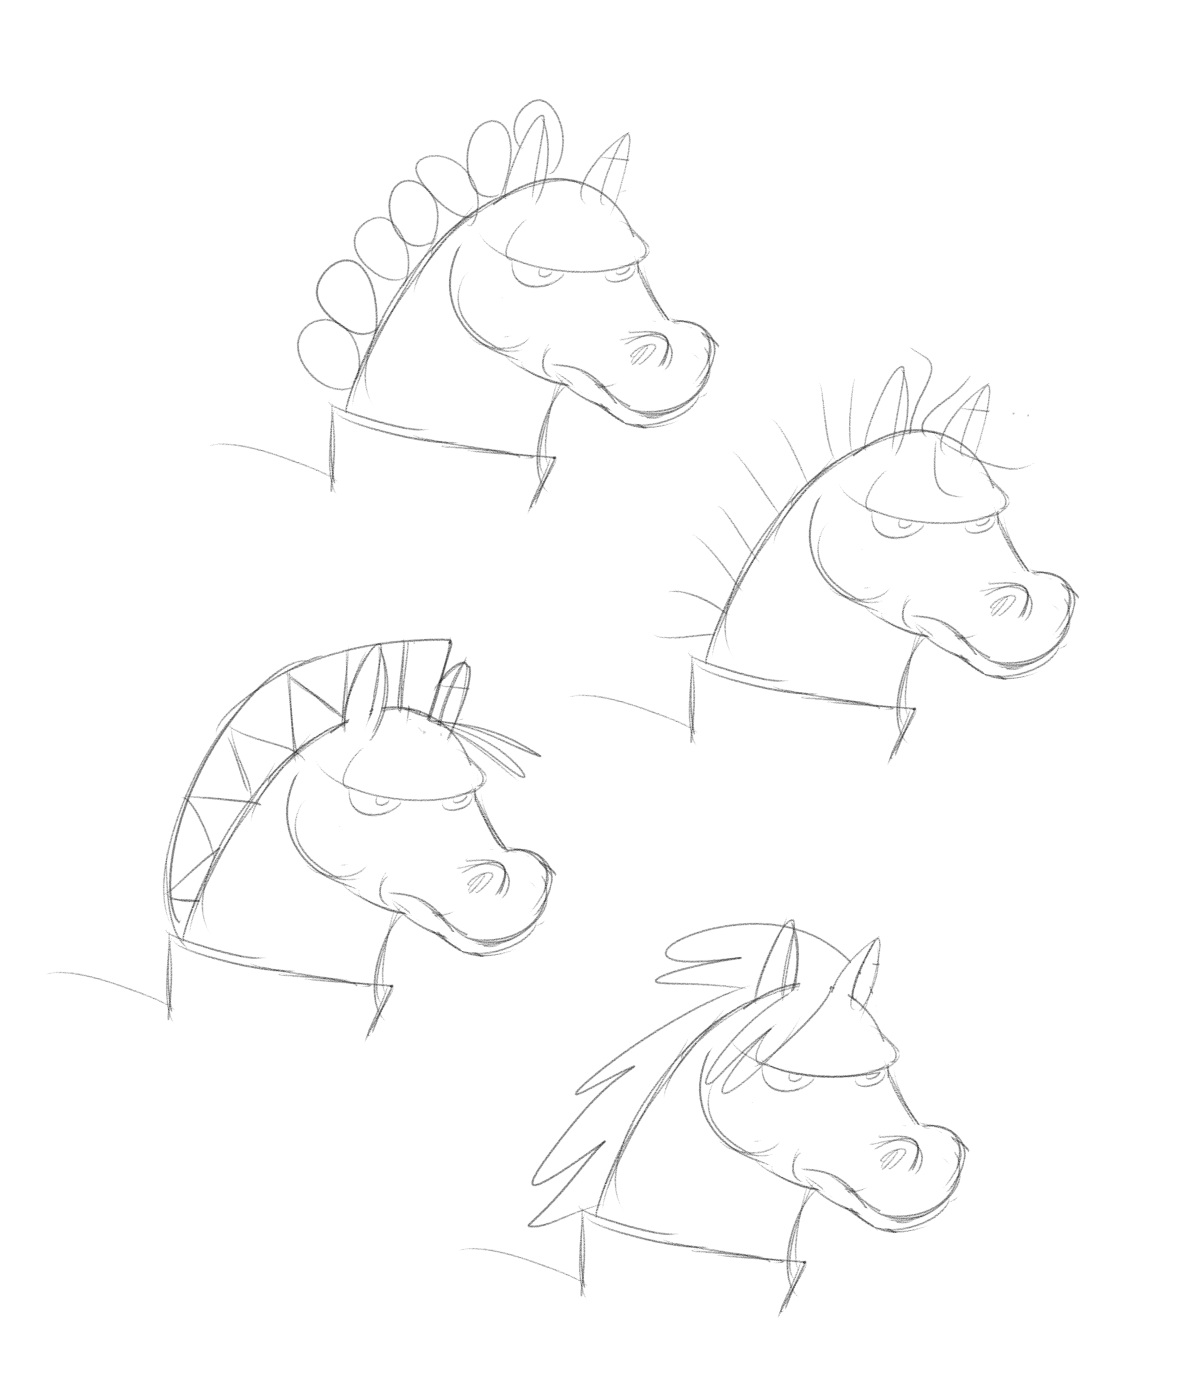 Thinking What Hairstyle I Should Choose For The Horse Warrior To